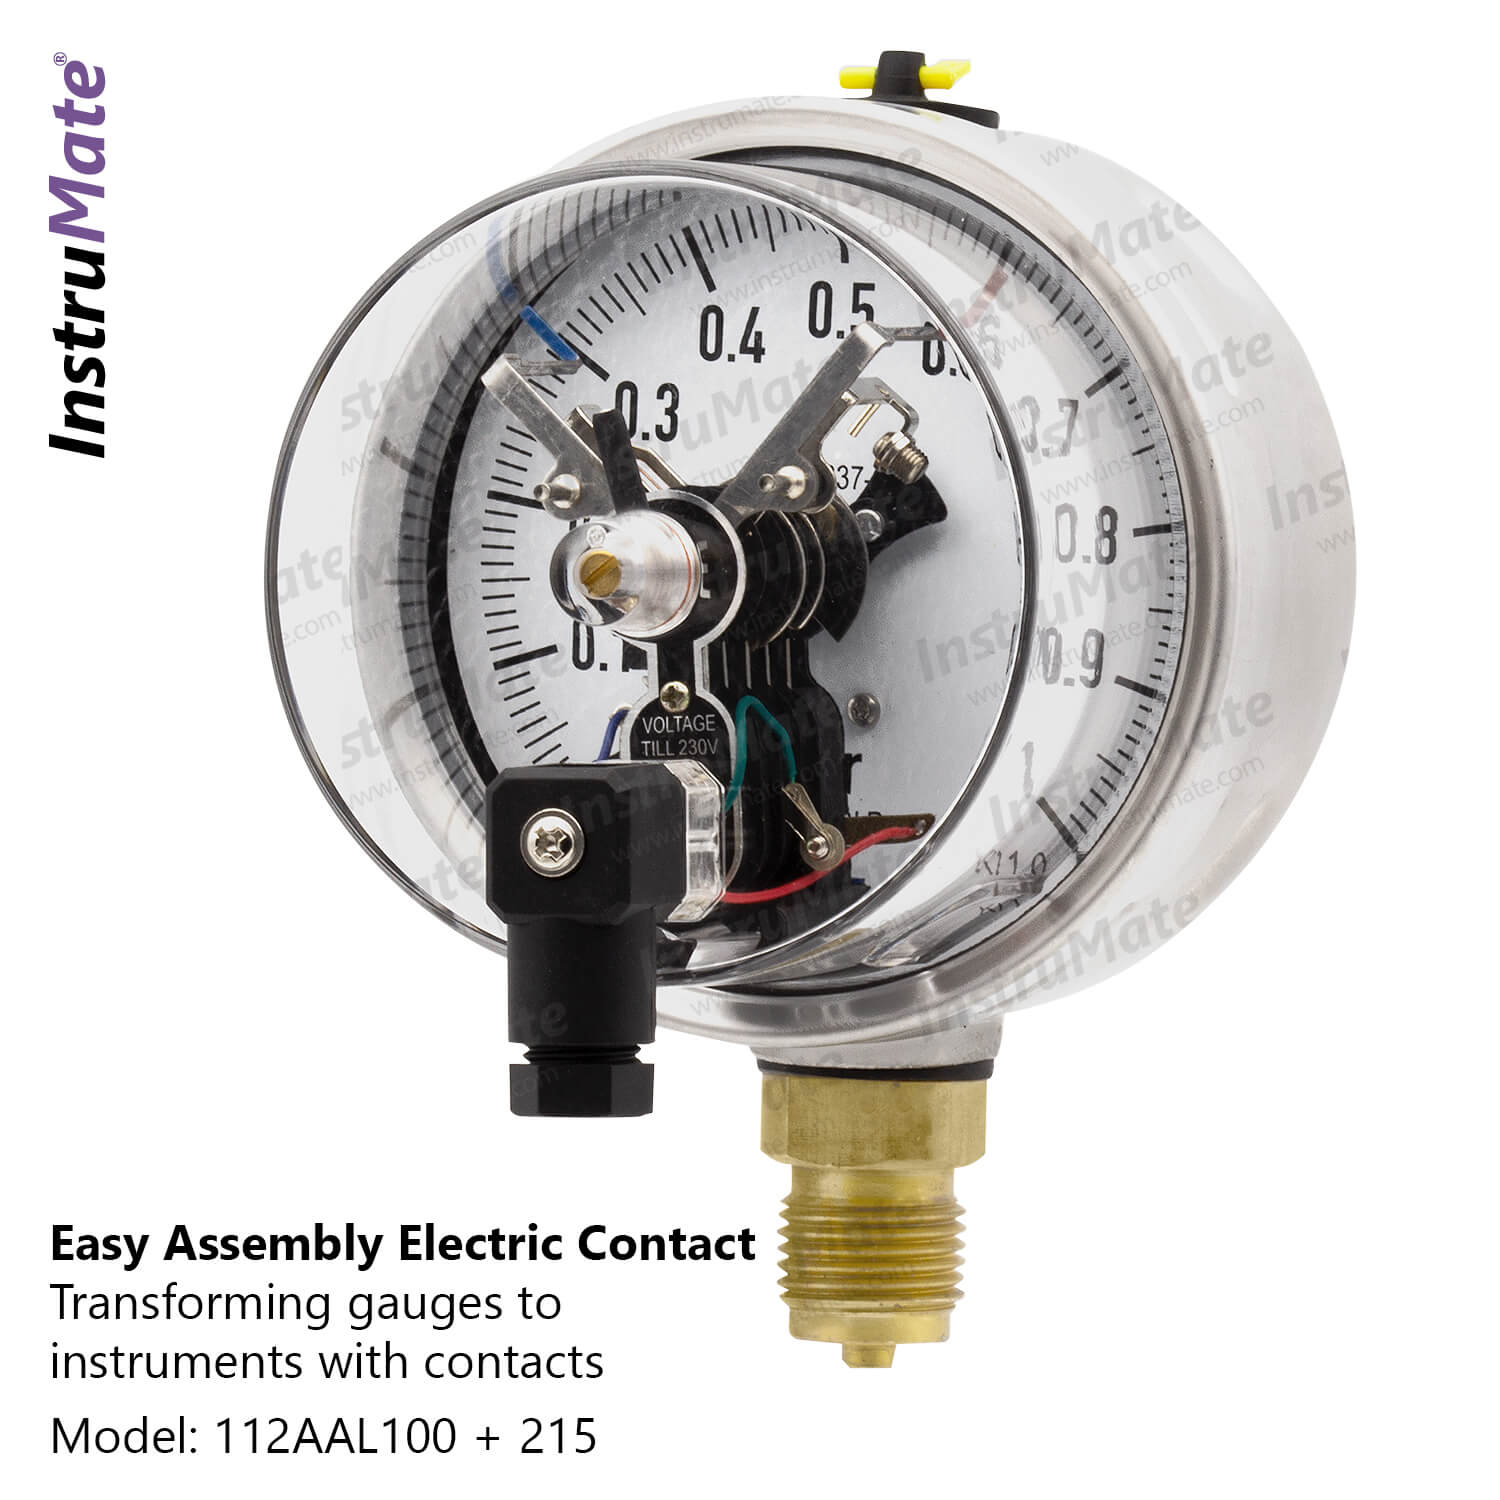 Easy Assembly Electric Contact - 215 - InstruMatea